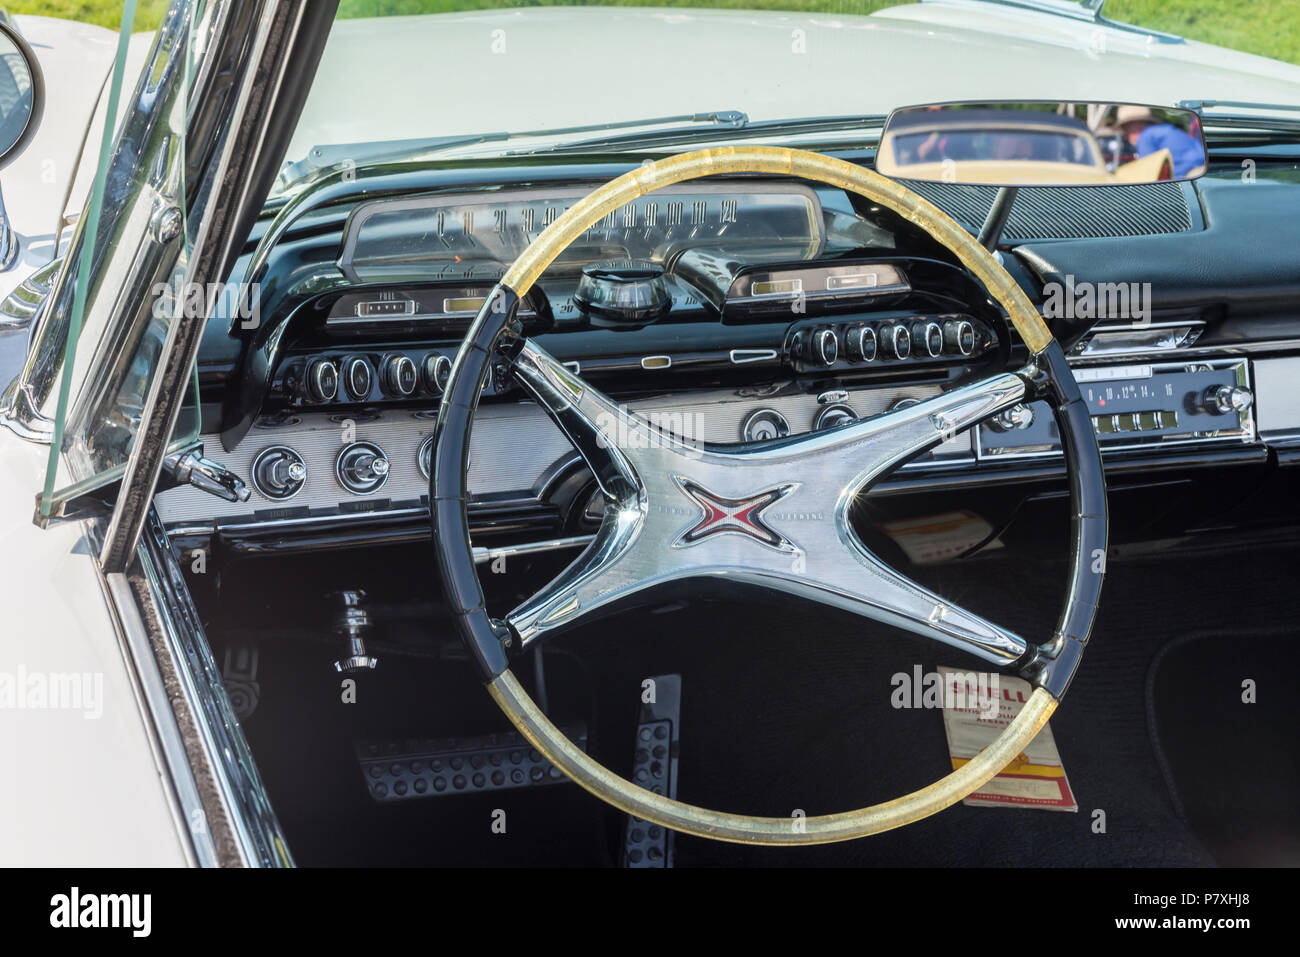 GROSSE POINTE SHORES, MI/USA - JUNE 17, 2018: Close-up of a 1960 Dodge Polara dashboard with push button transmission at the EyesOn Design show. - Stock Image